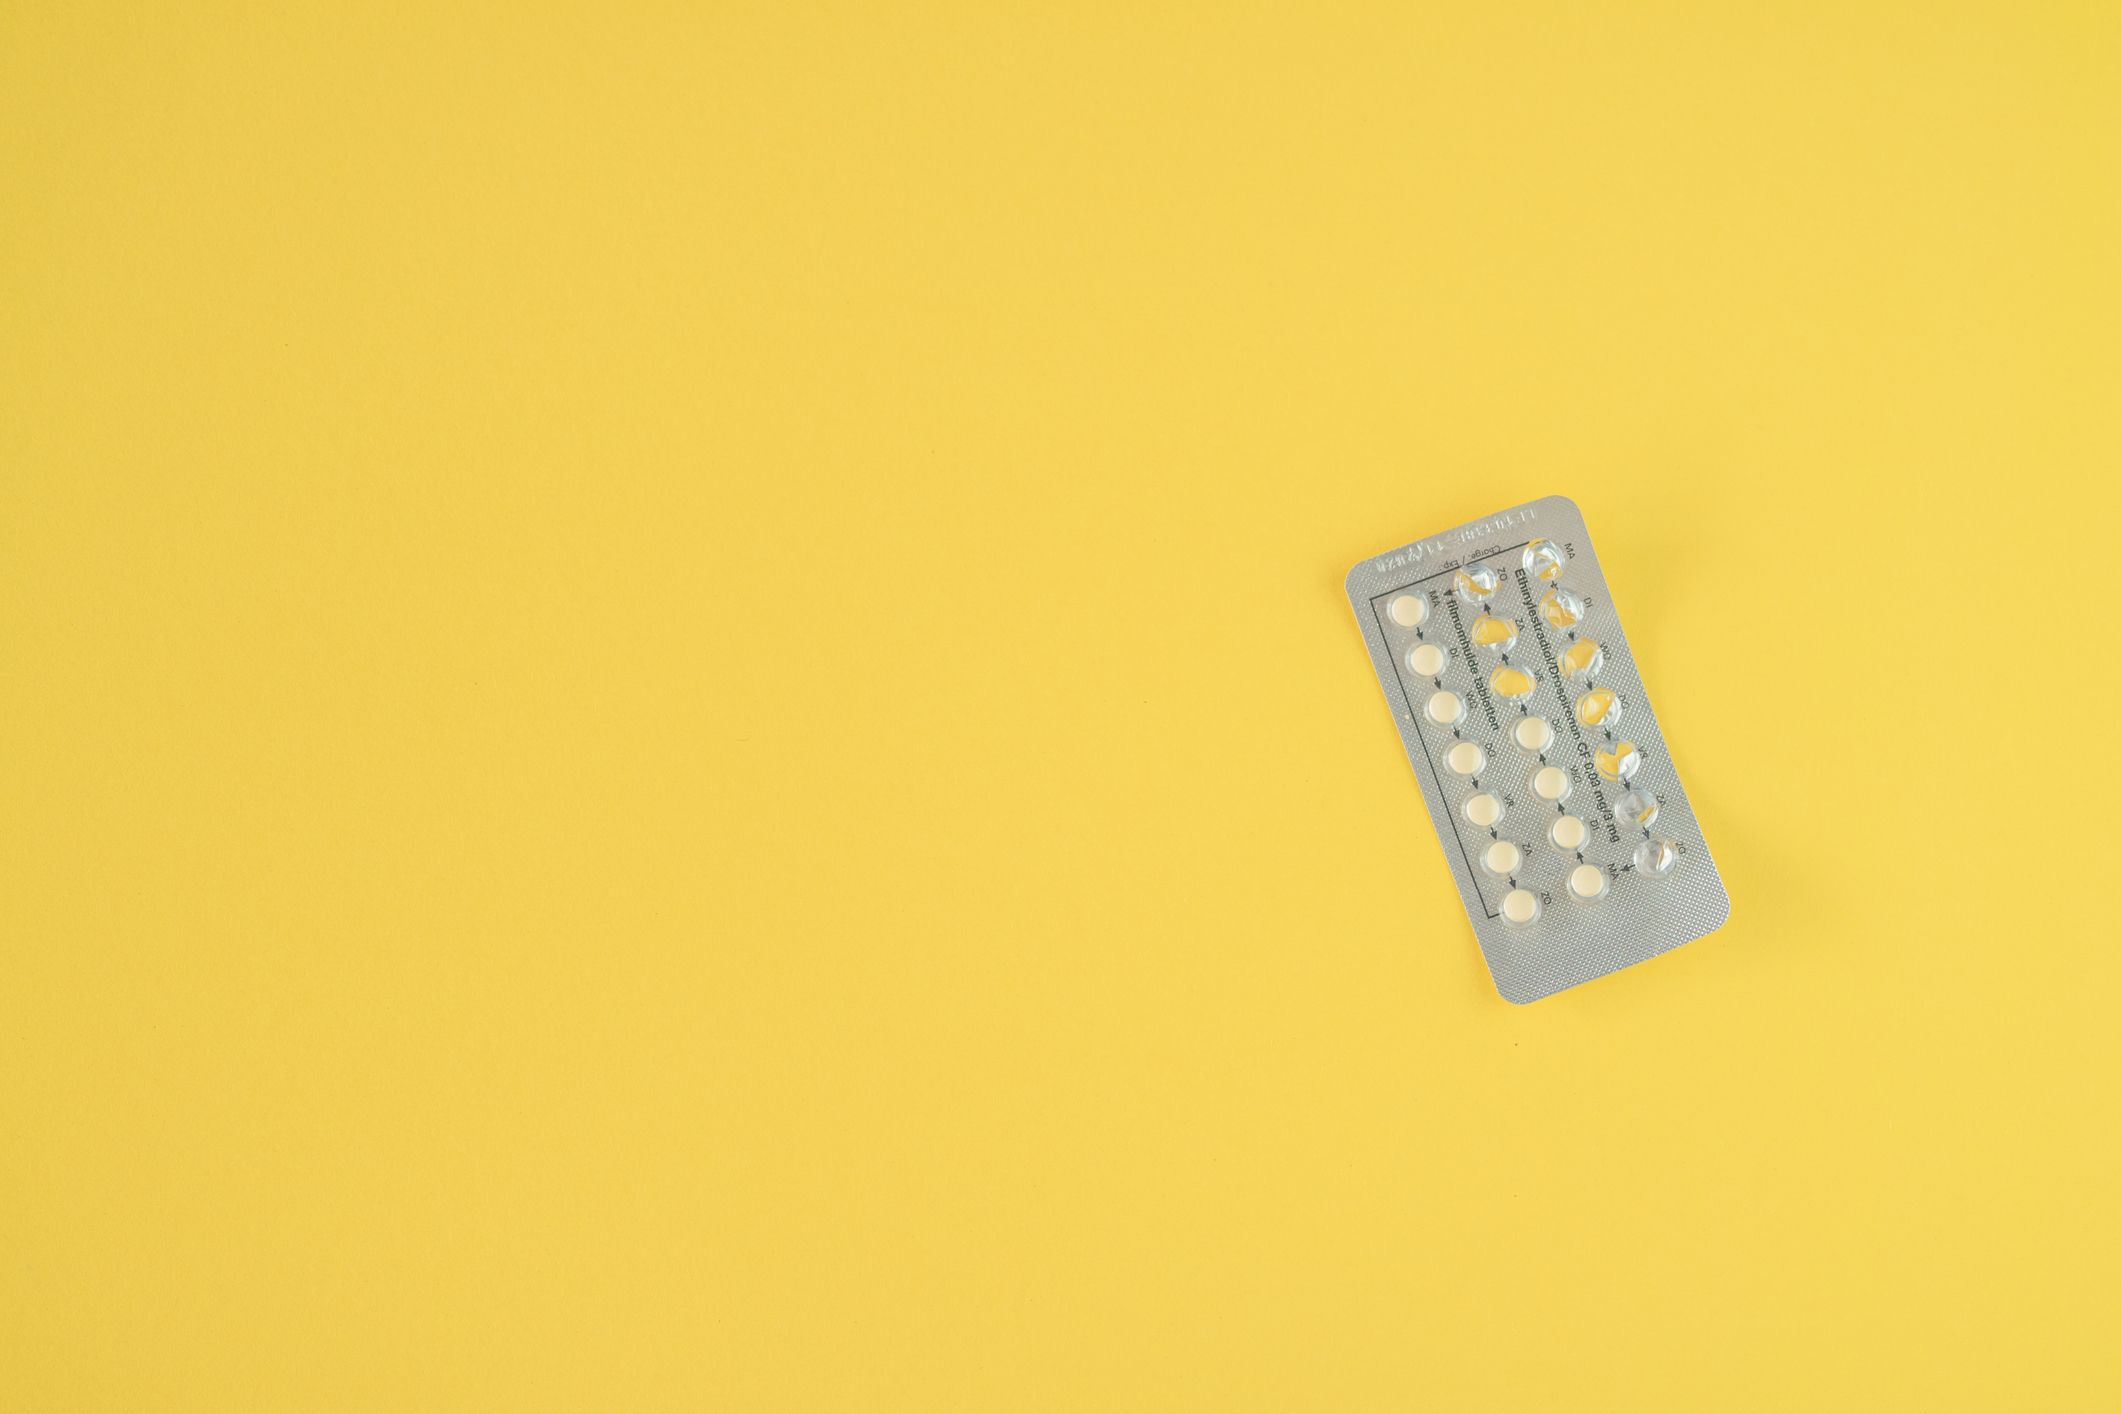 Yasmin contraceptive pill (ethinylestradiol and drospirenone) side-effects,  dosage and usage instructions